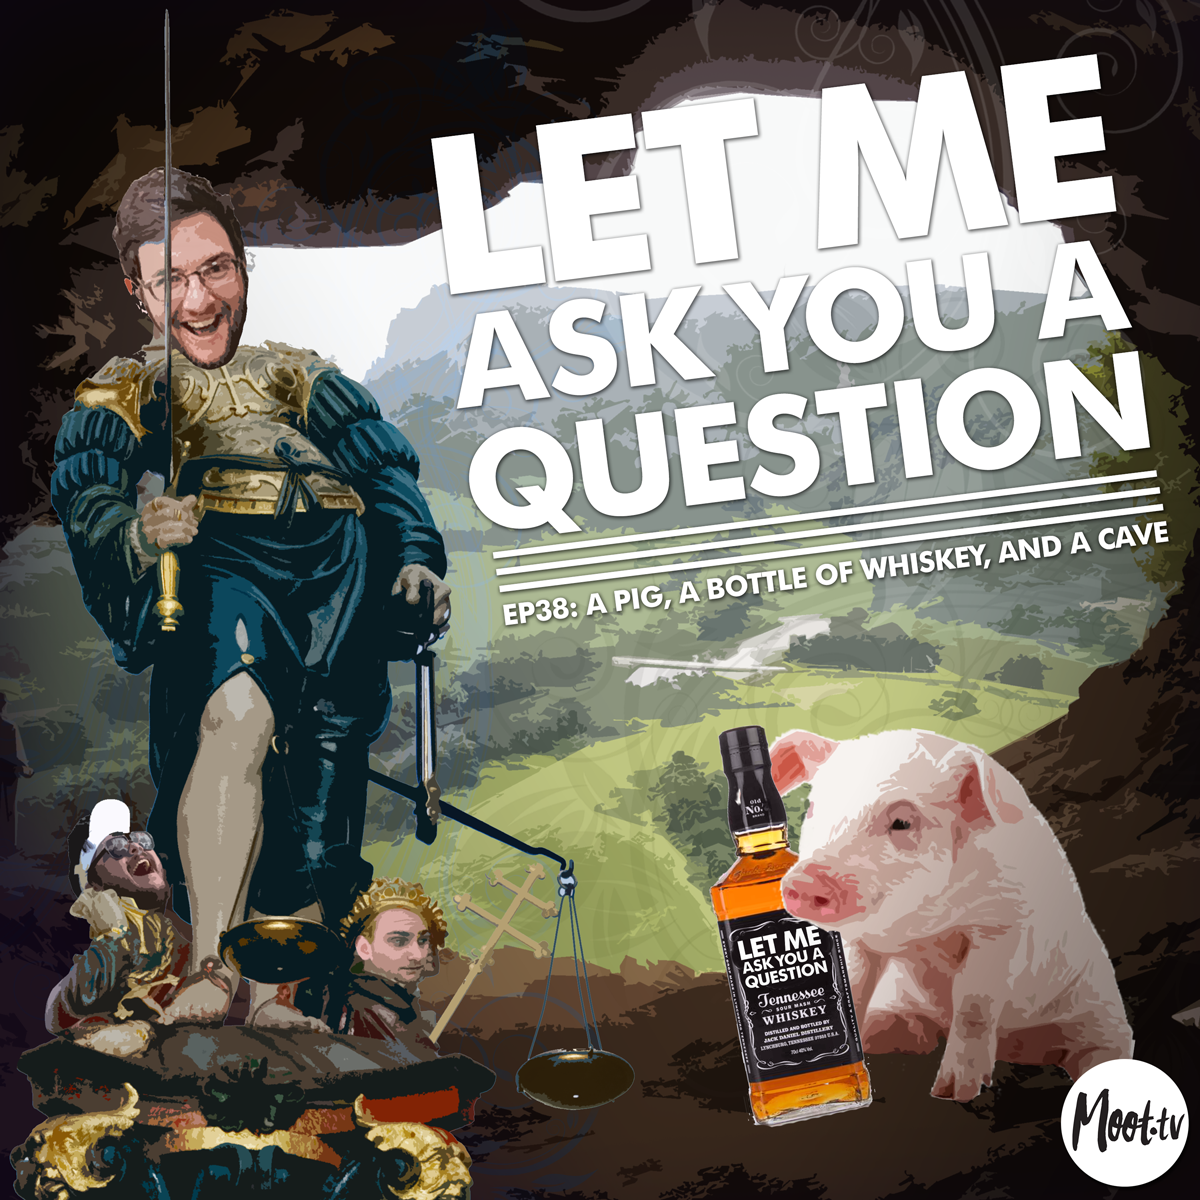 Let Me Ask You A Question Ep38: A Pig, A Bottle of Whiskey, and a Cave